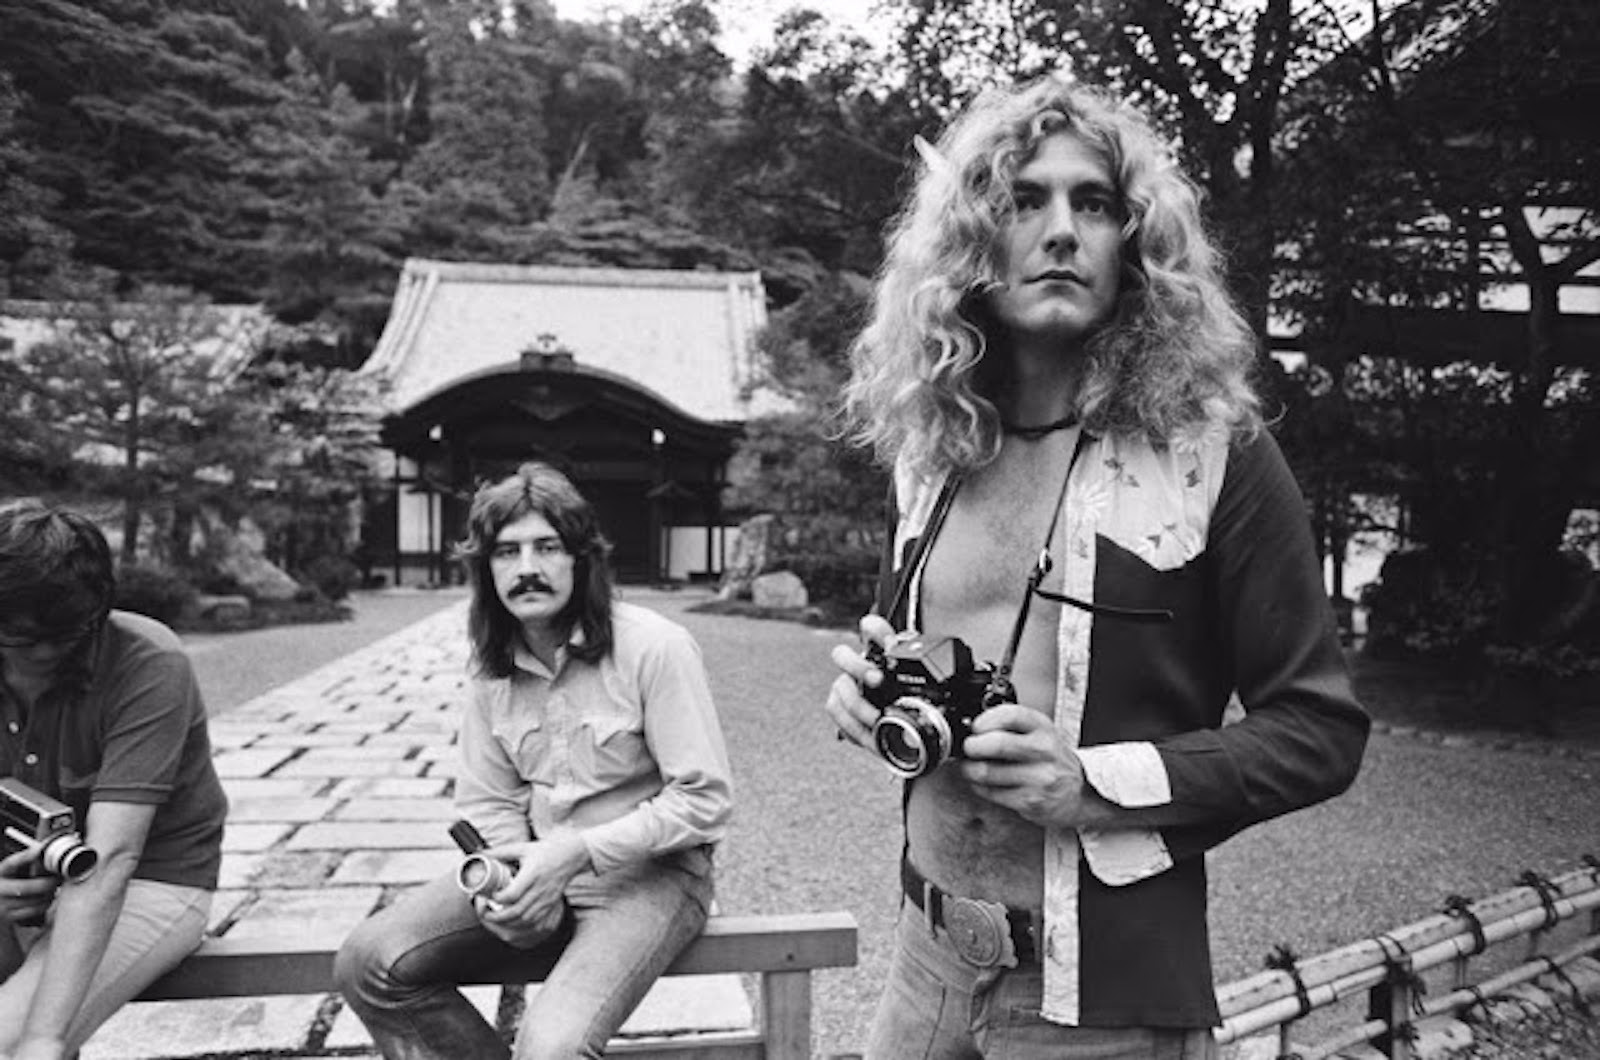 rock-stars-as-tourists-in-japan-1970s-80s-11.jpg